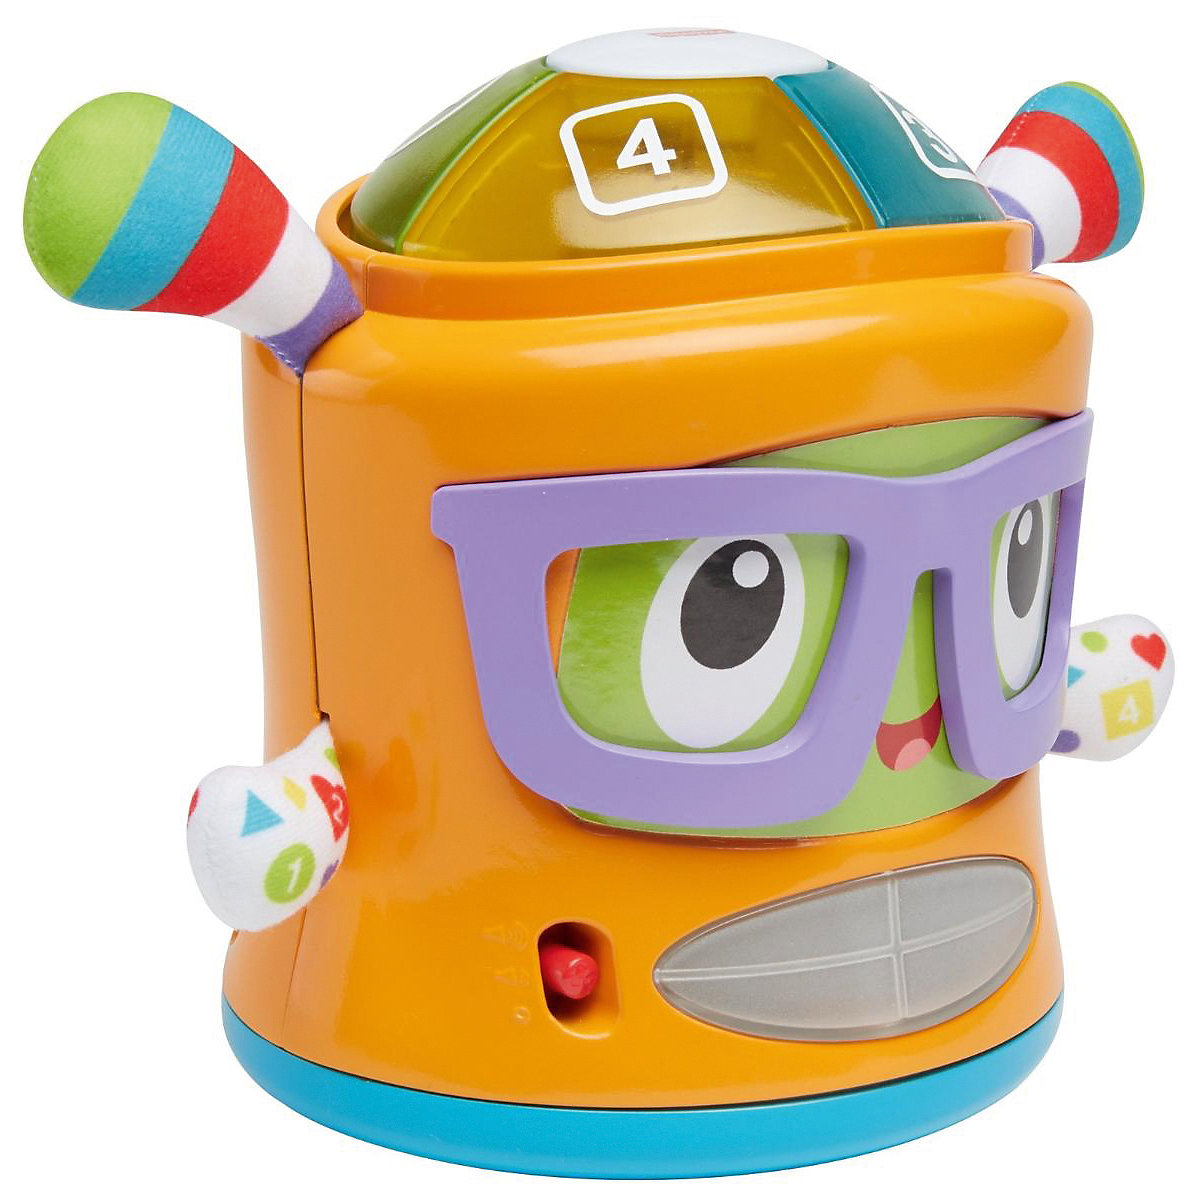 Electronic Pets FISHER-PRICE 8068836 Tamagochi Robot Toys Interactive Dog Animals Kids MTpromo